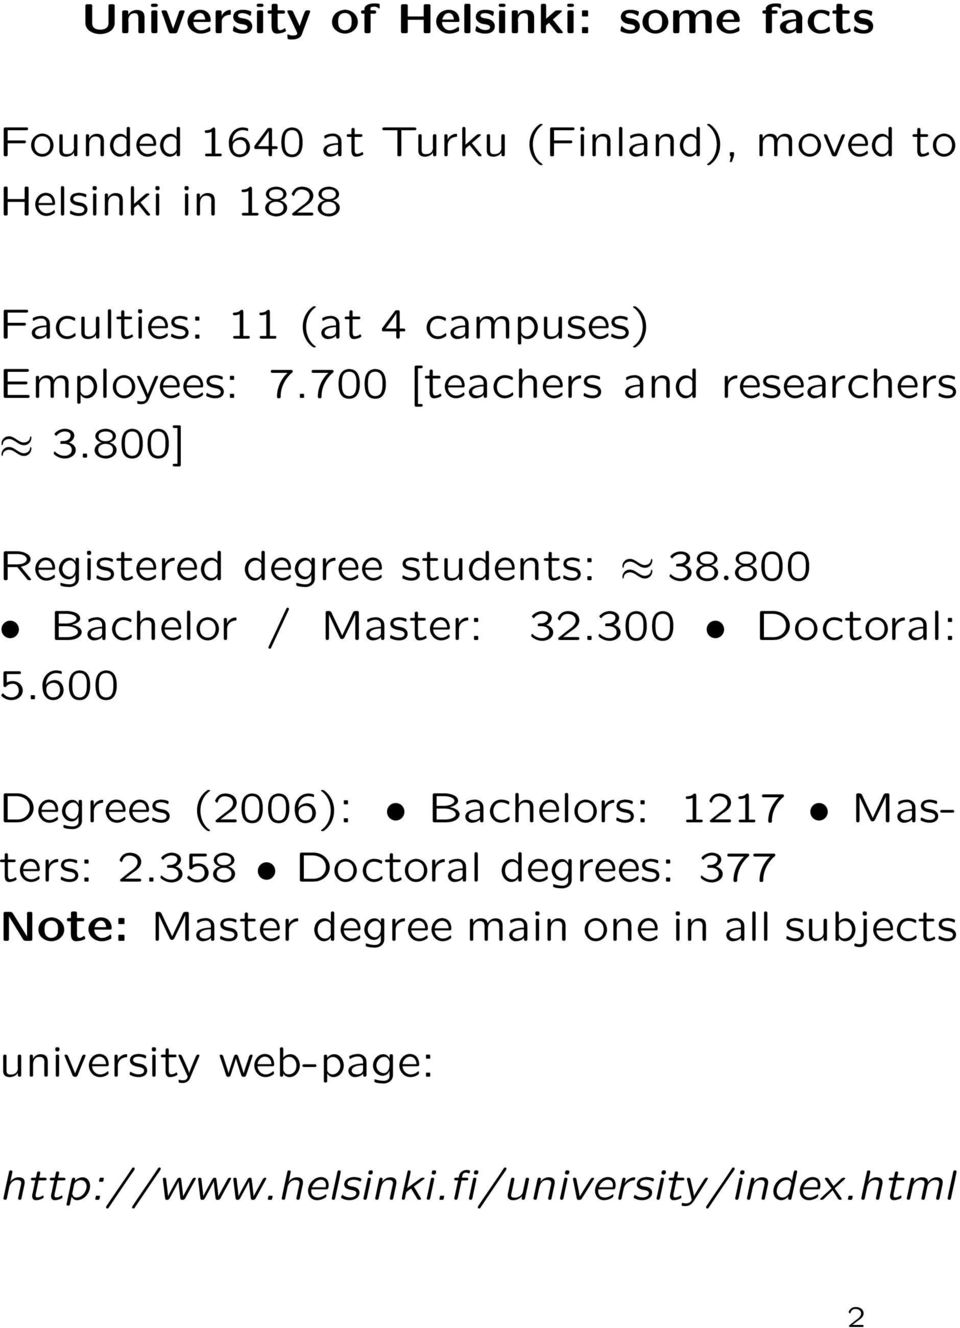 800 Bachelor / Master: 32.300 Doctoral: 5.600 Degrees (2006): Bachelors: 1217 Masters: 2.